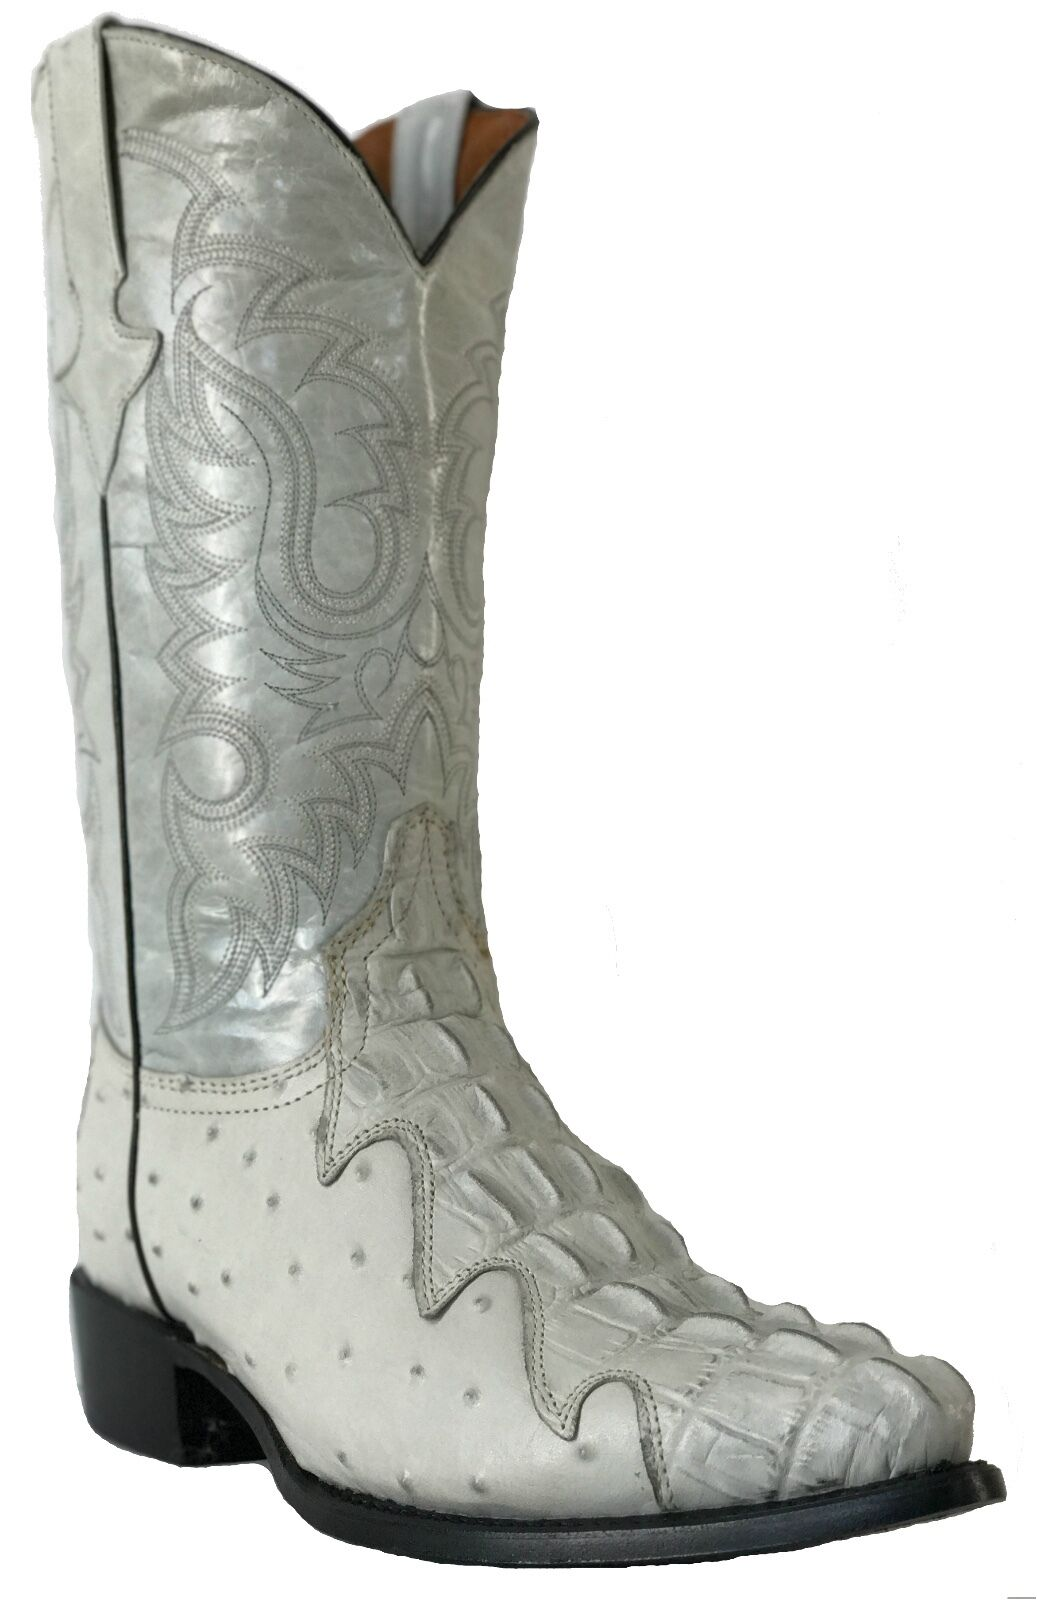 Men's New  Ostrich Crocodile Design Leather Cowboy Western Boots Of White J Toe